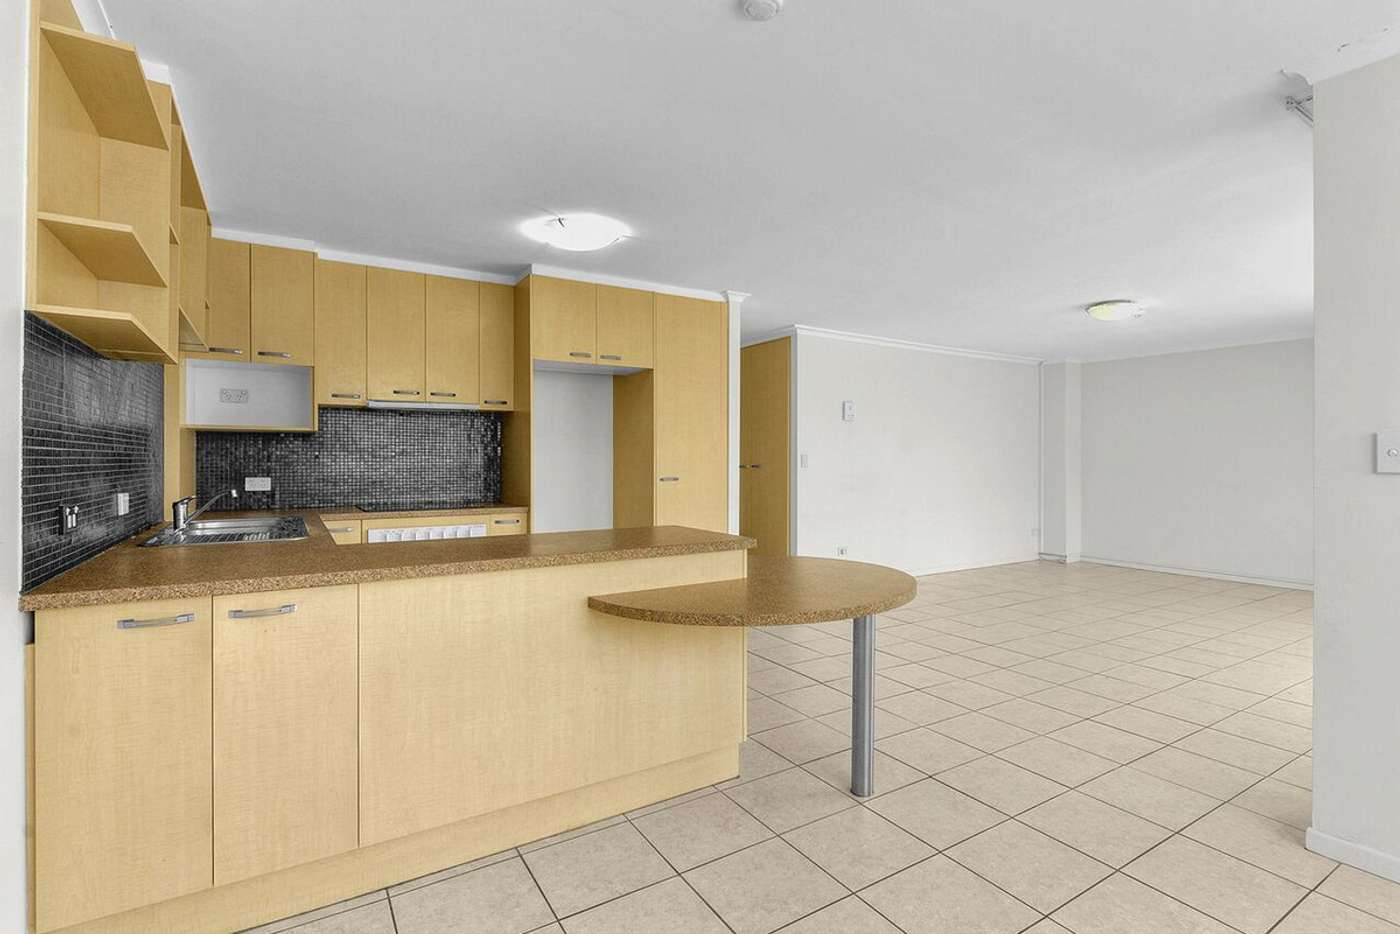 Fifth view of Homely apartment listing, 89 Thorn Street, Kangaroo Point QLD 4169